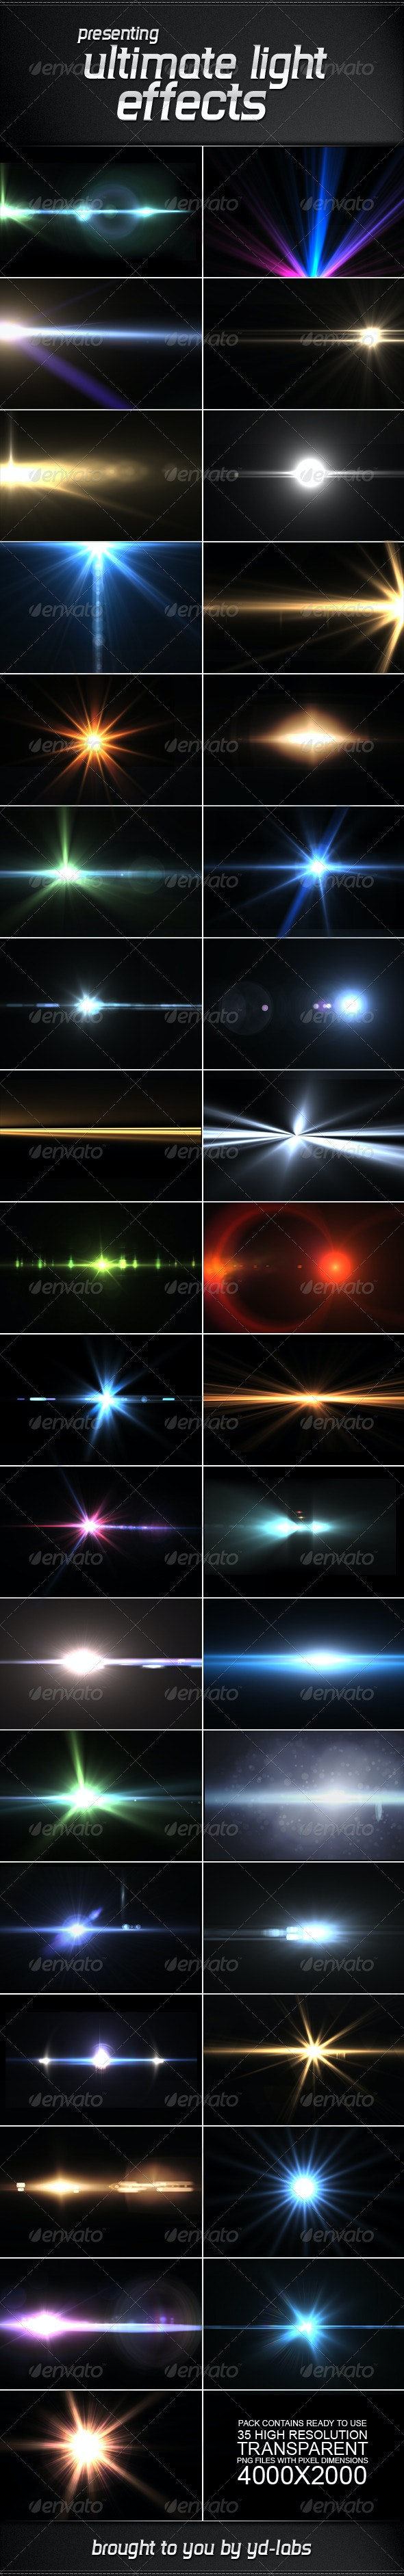 35 Ultimate Light Effects Volume 2 - Decorative Graphics